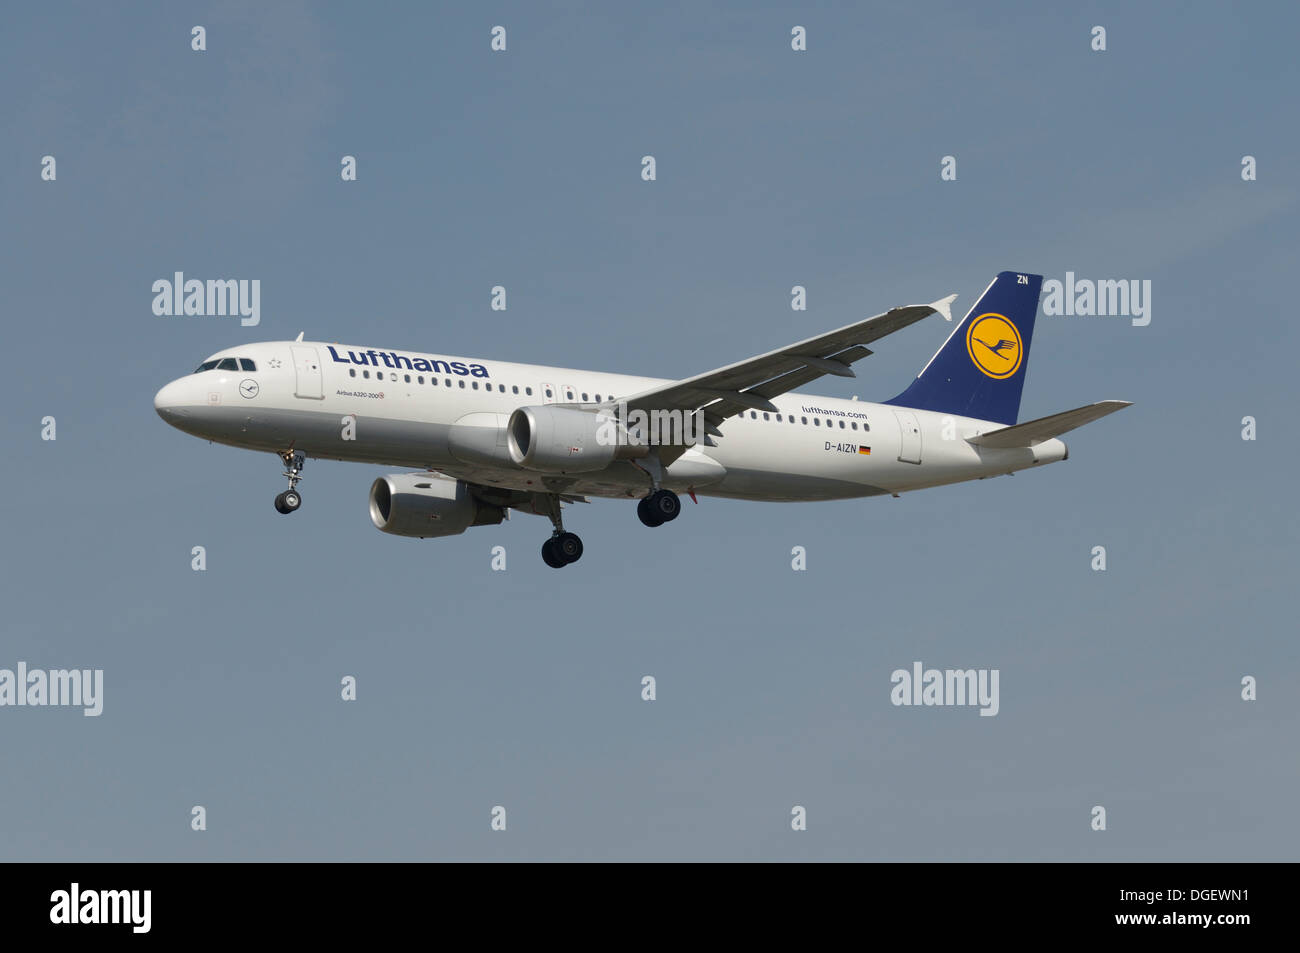 Lufthansa Airbus A320-200 on final approach - Stock Image